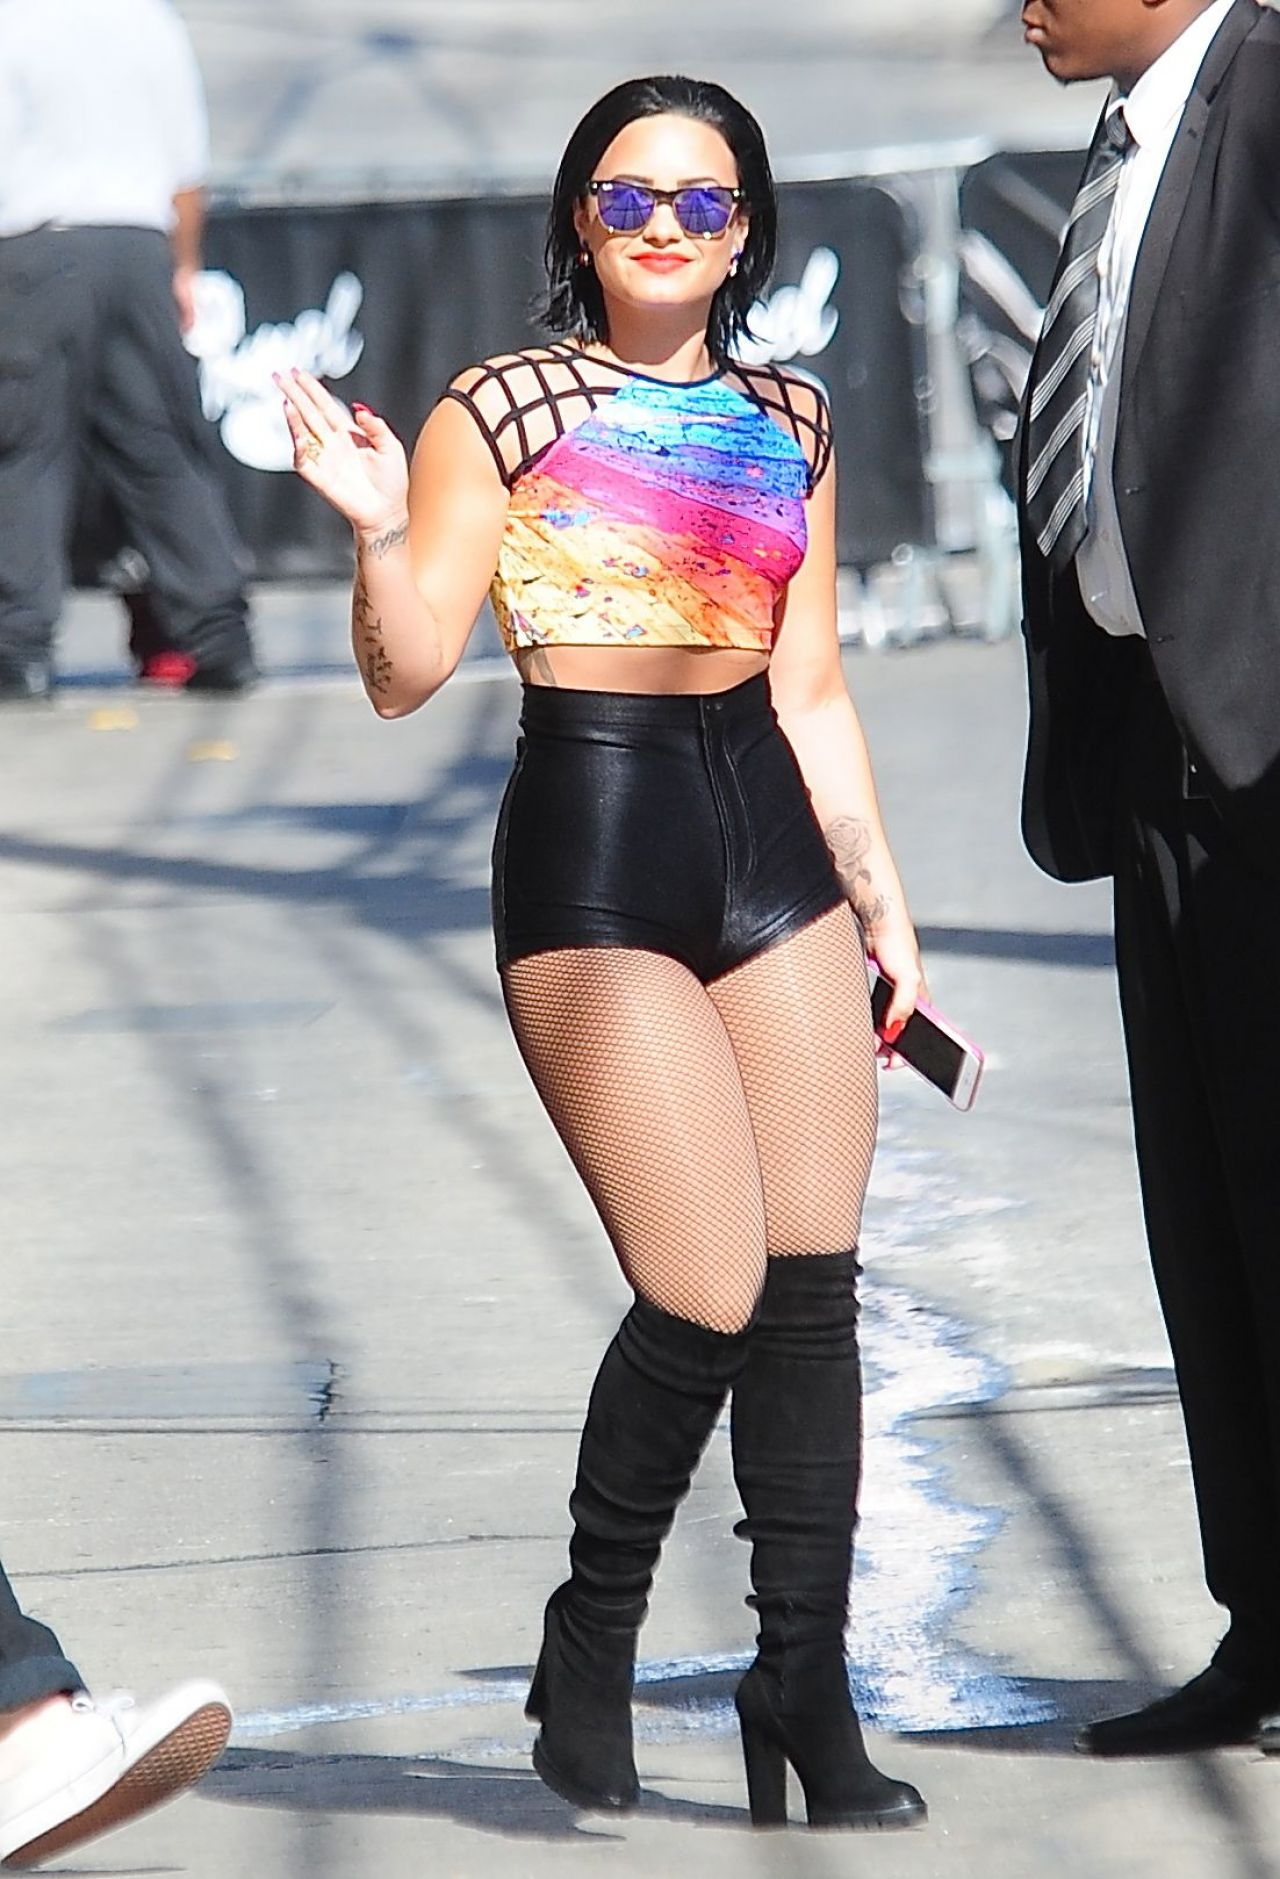 demi-lovato-at-jimmy-kimmel-live-in-hollywood-august-2015_4